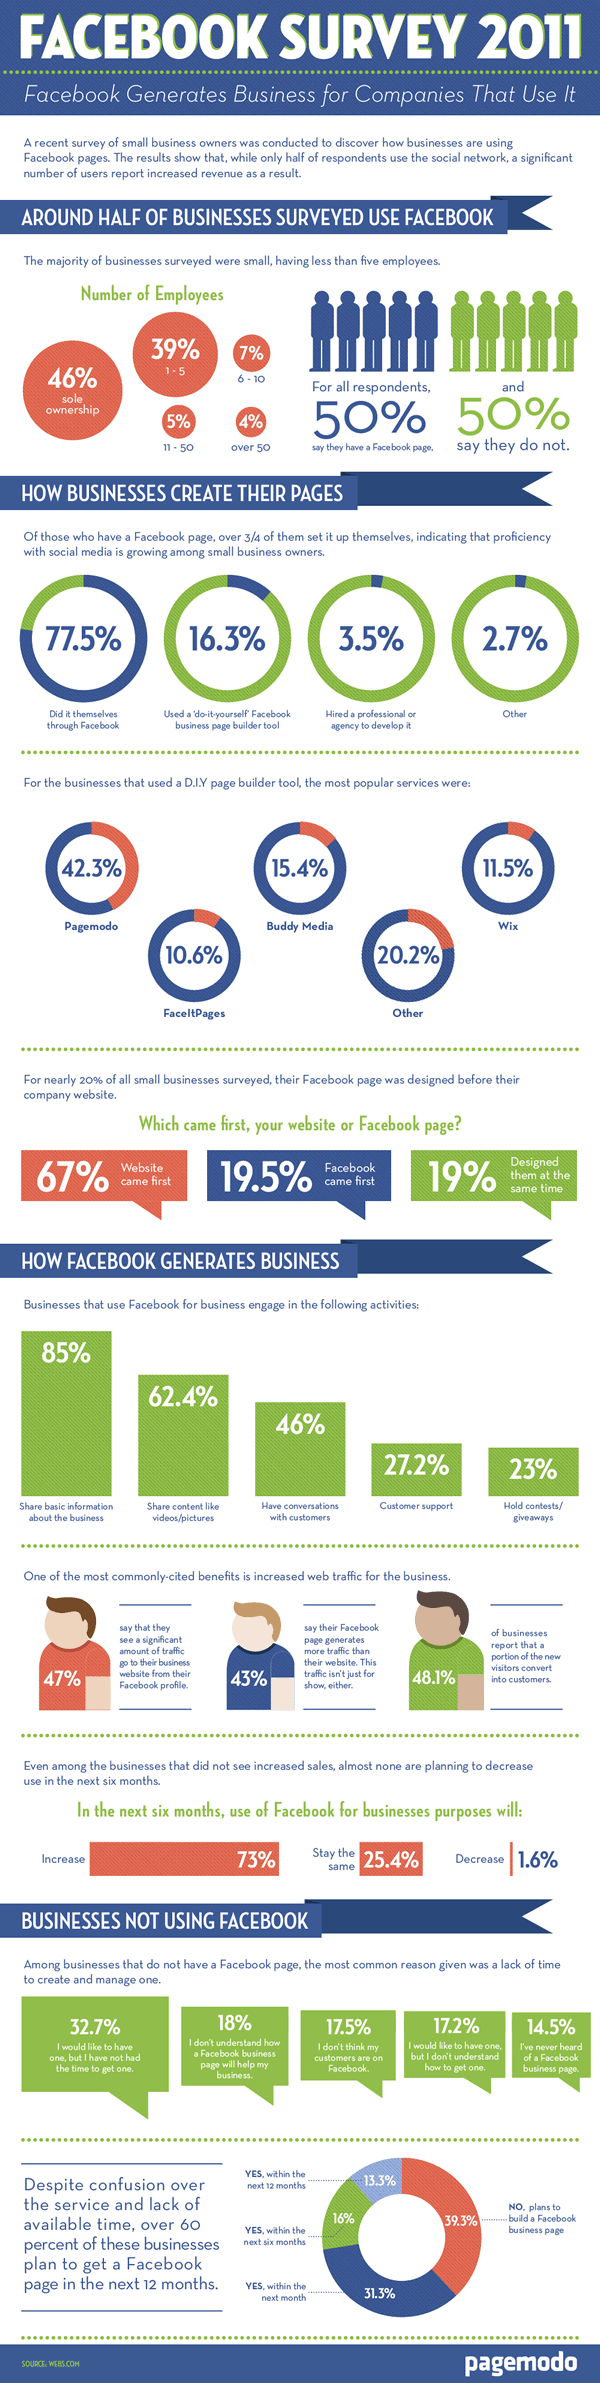 Facebook survey for businesses 2011